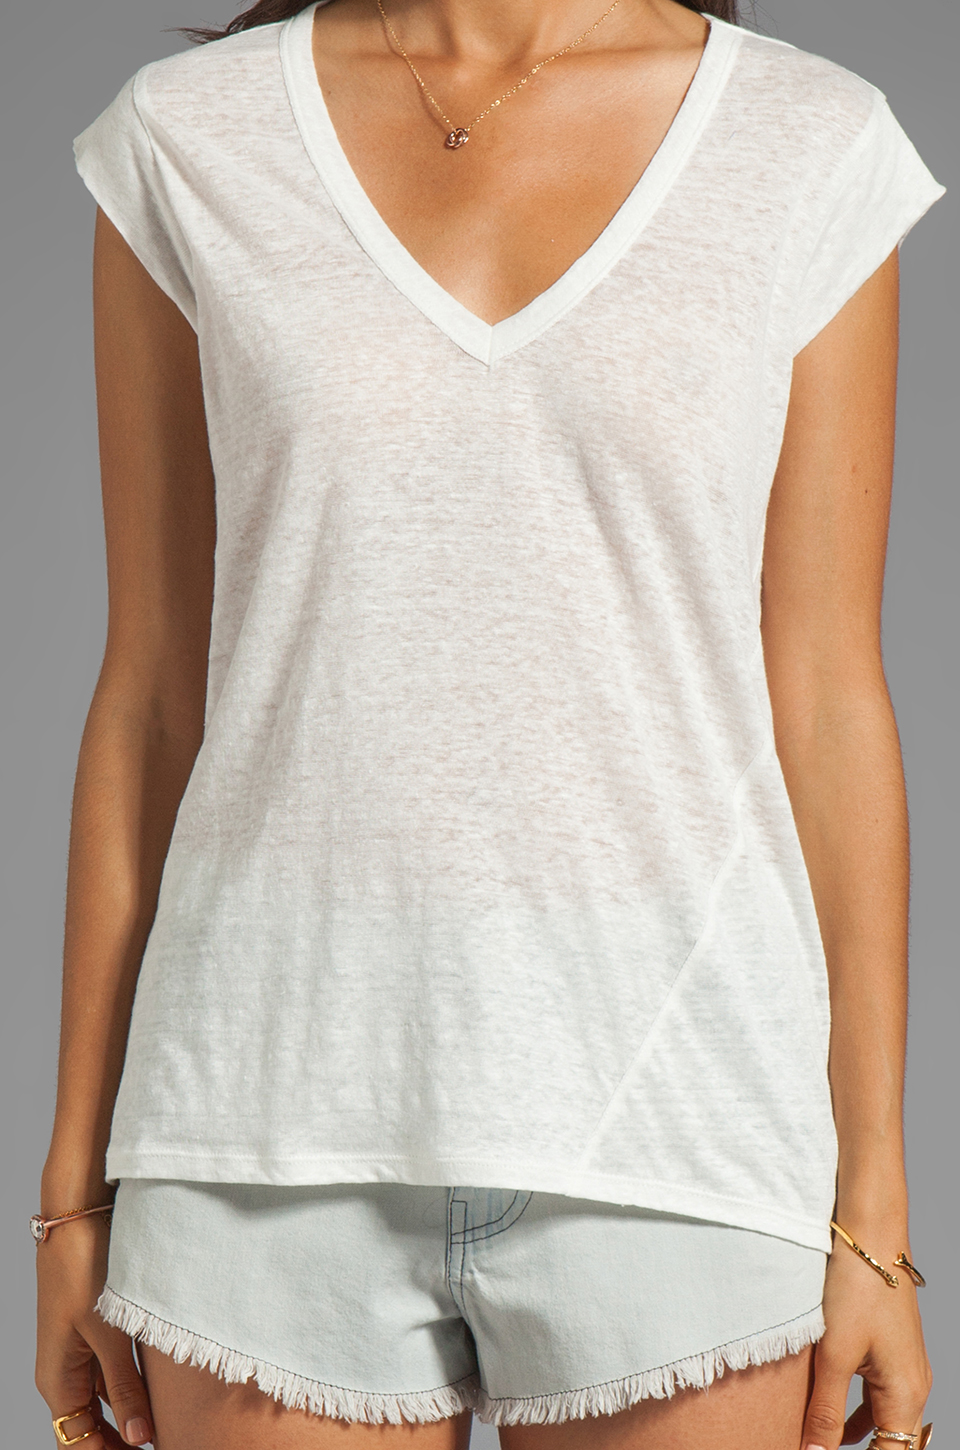 Joie Yulina Linen Tee in Porcelain